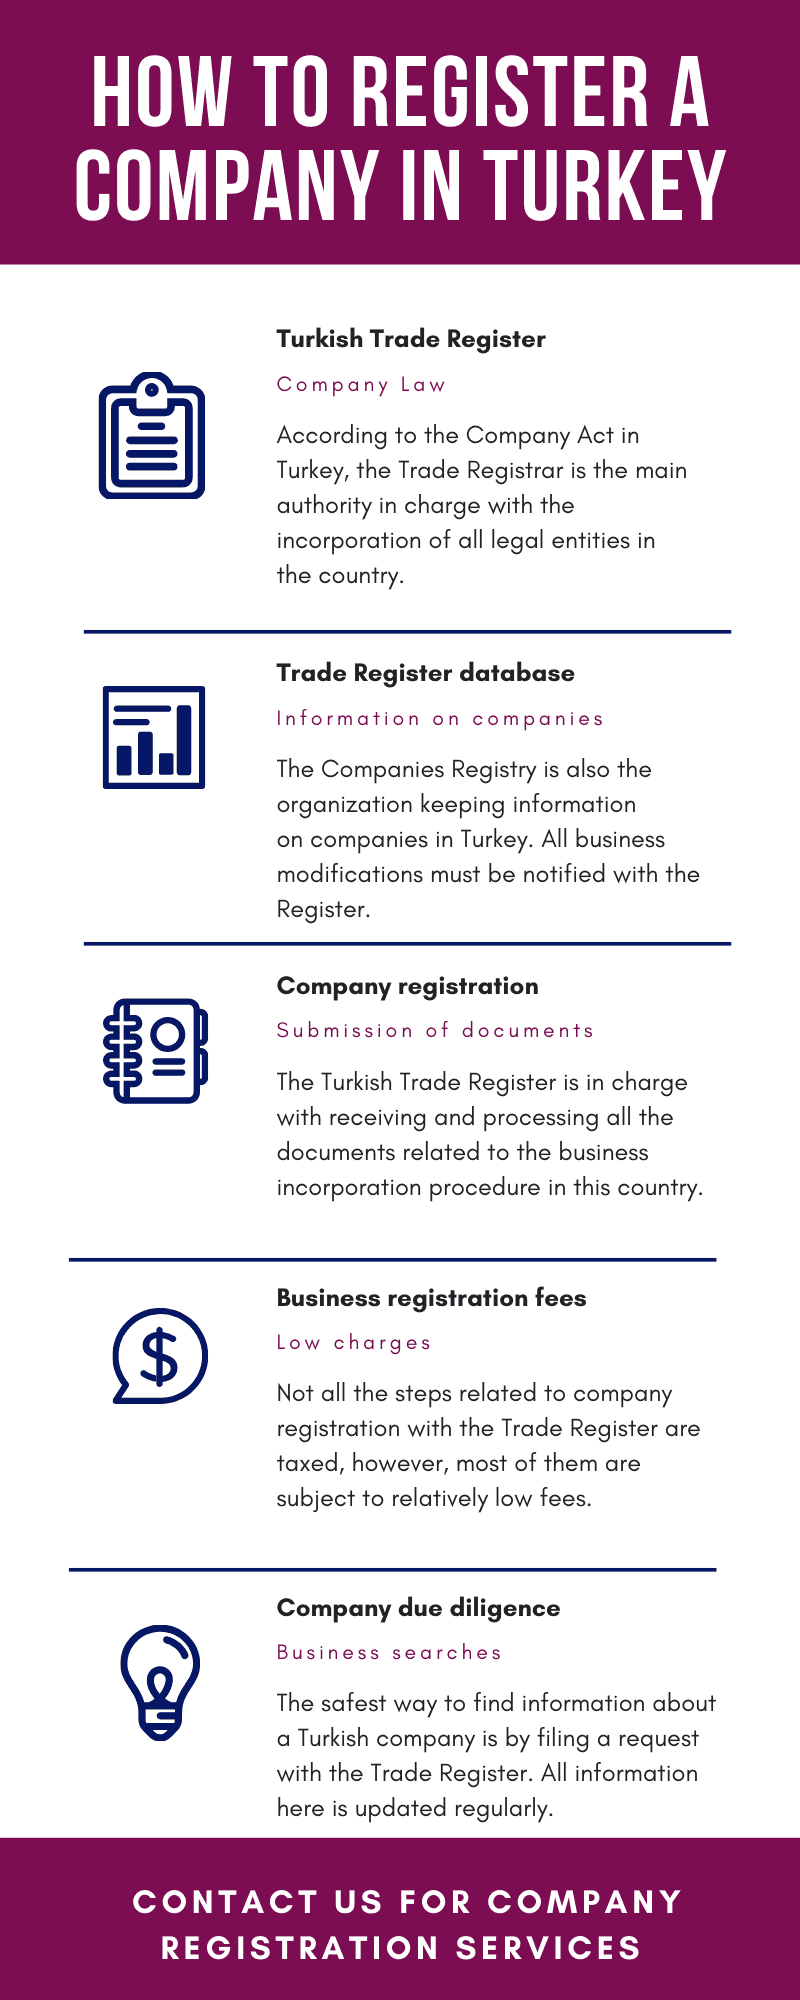 How to register a company in Turkey